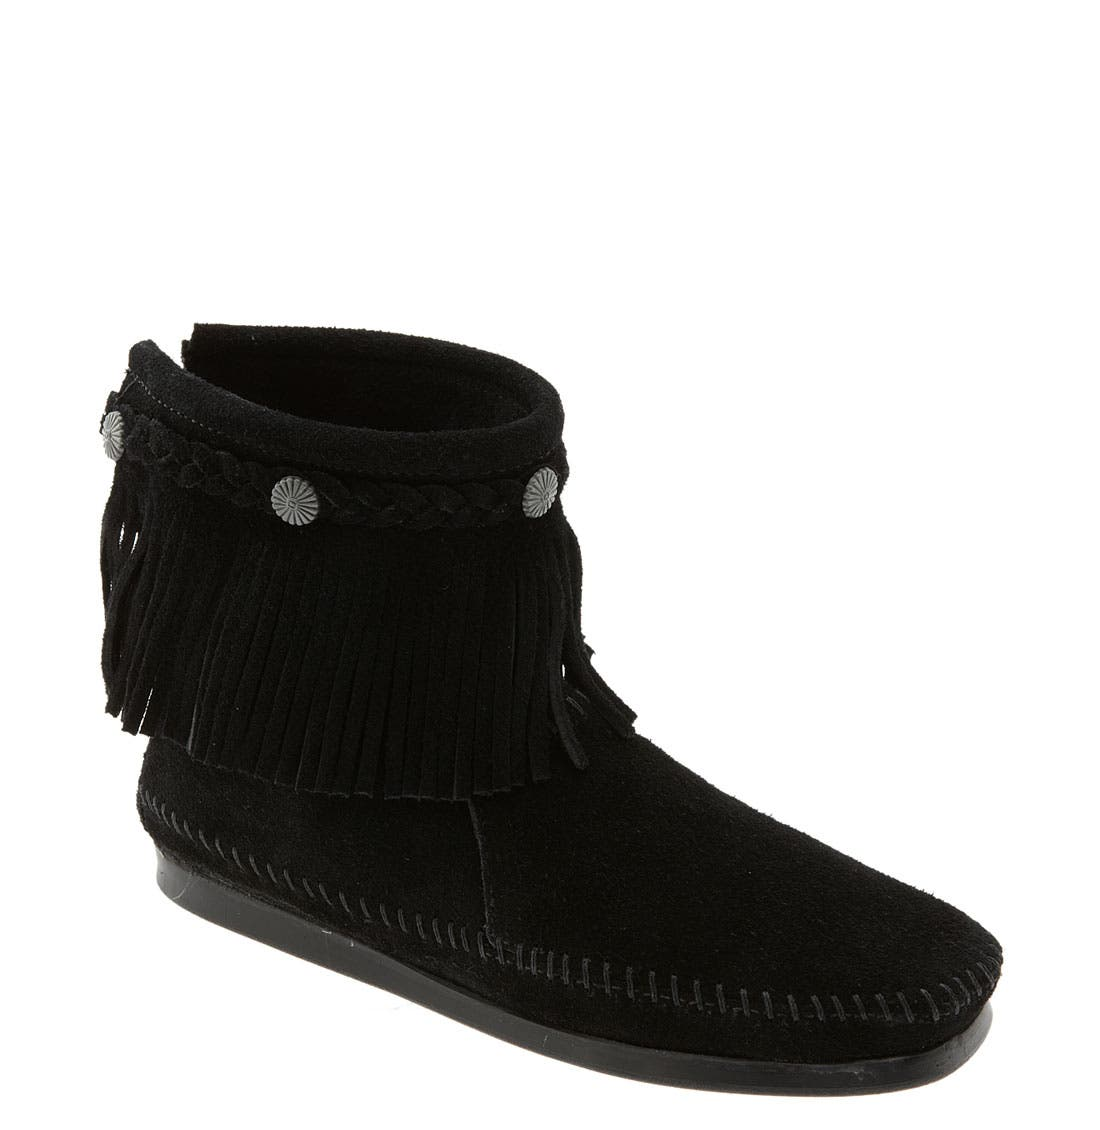 Minnetonka Fringed Moccasin Bootie